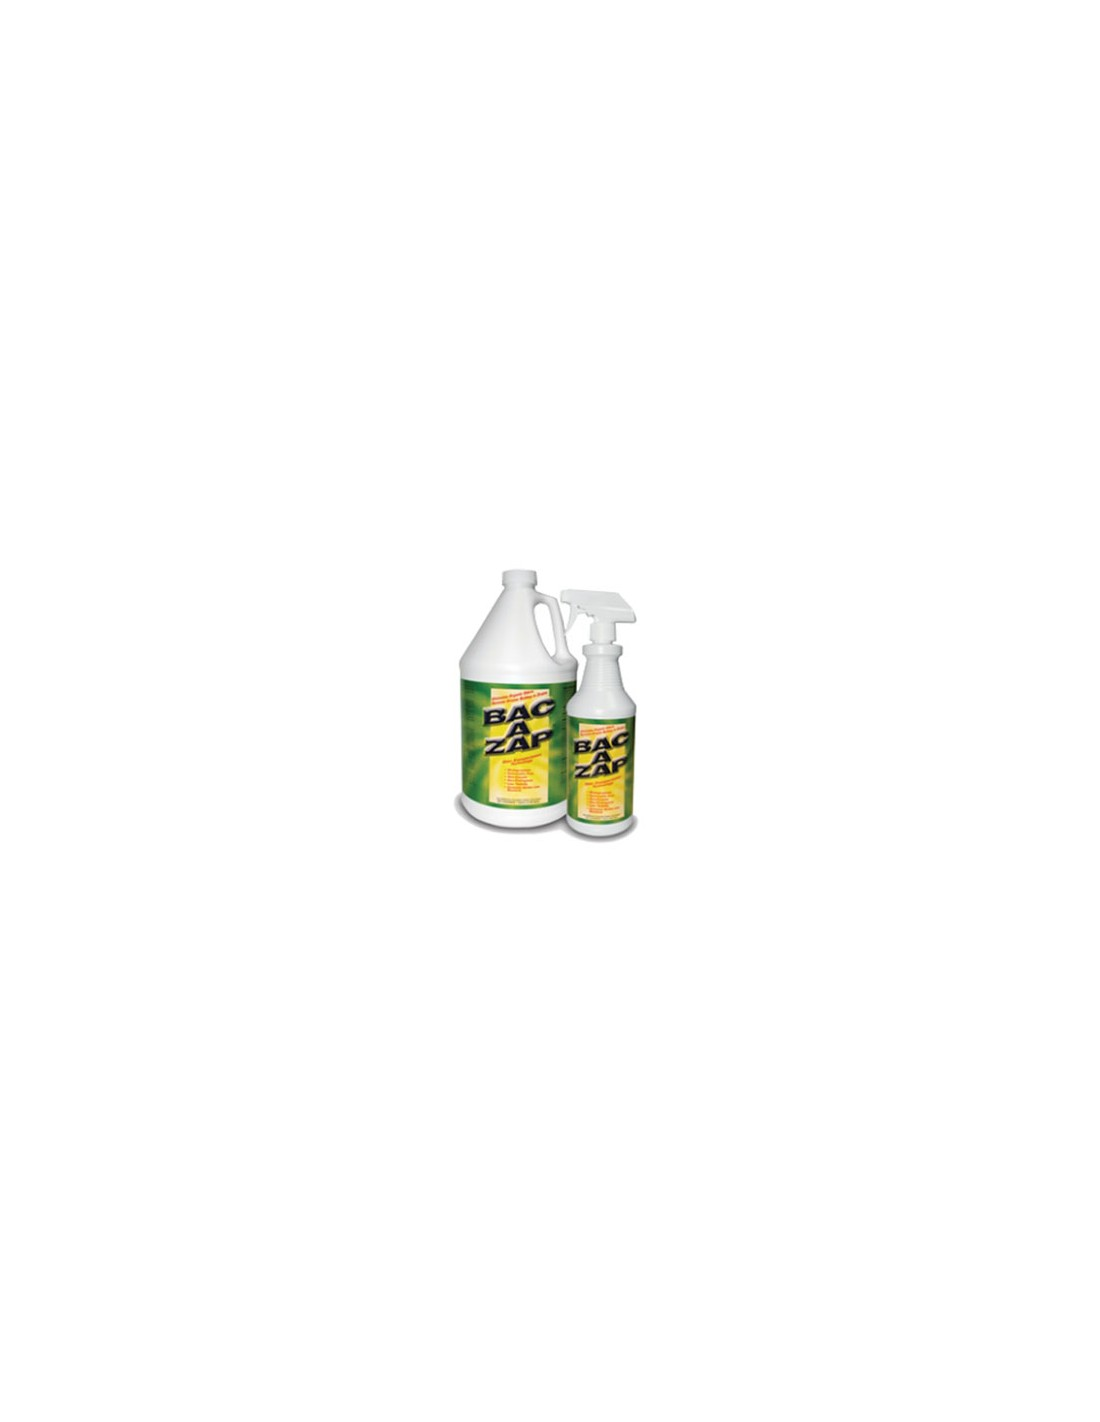 BAC A ZAP Odor Eliminator Questions & Answers